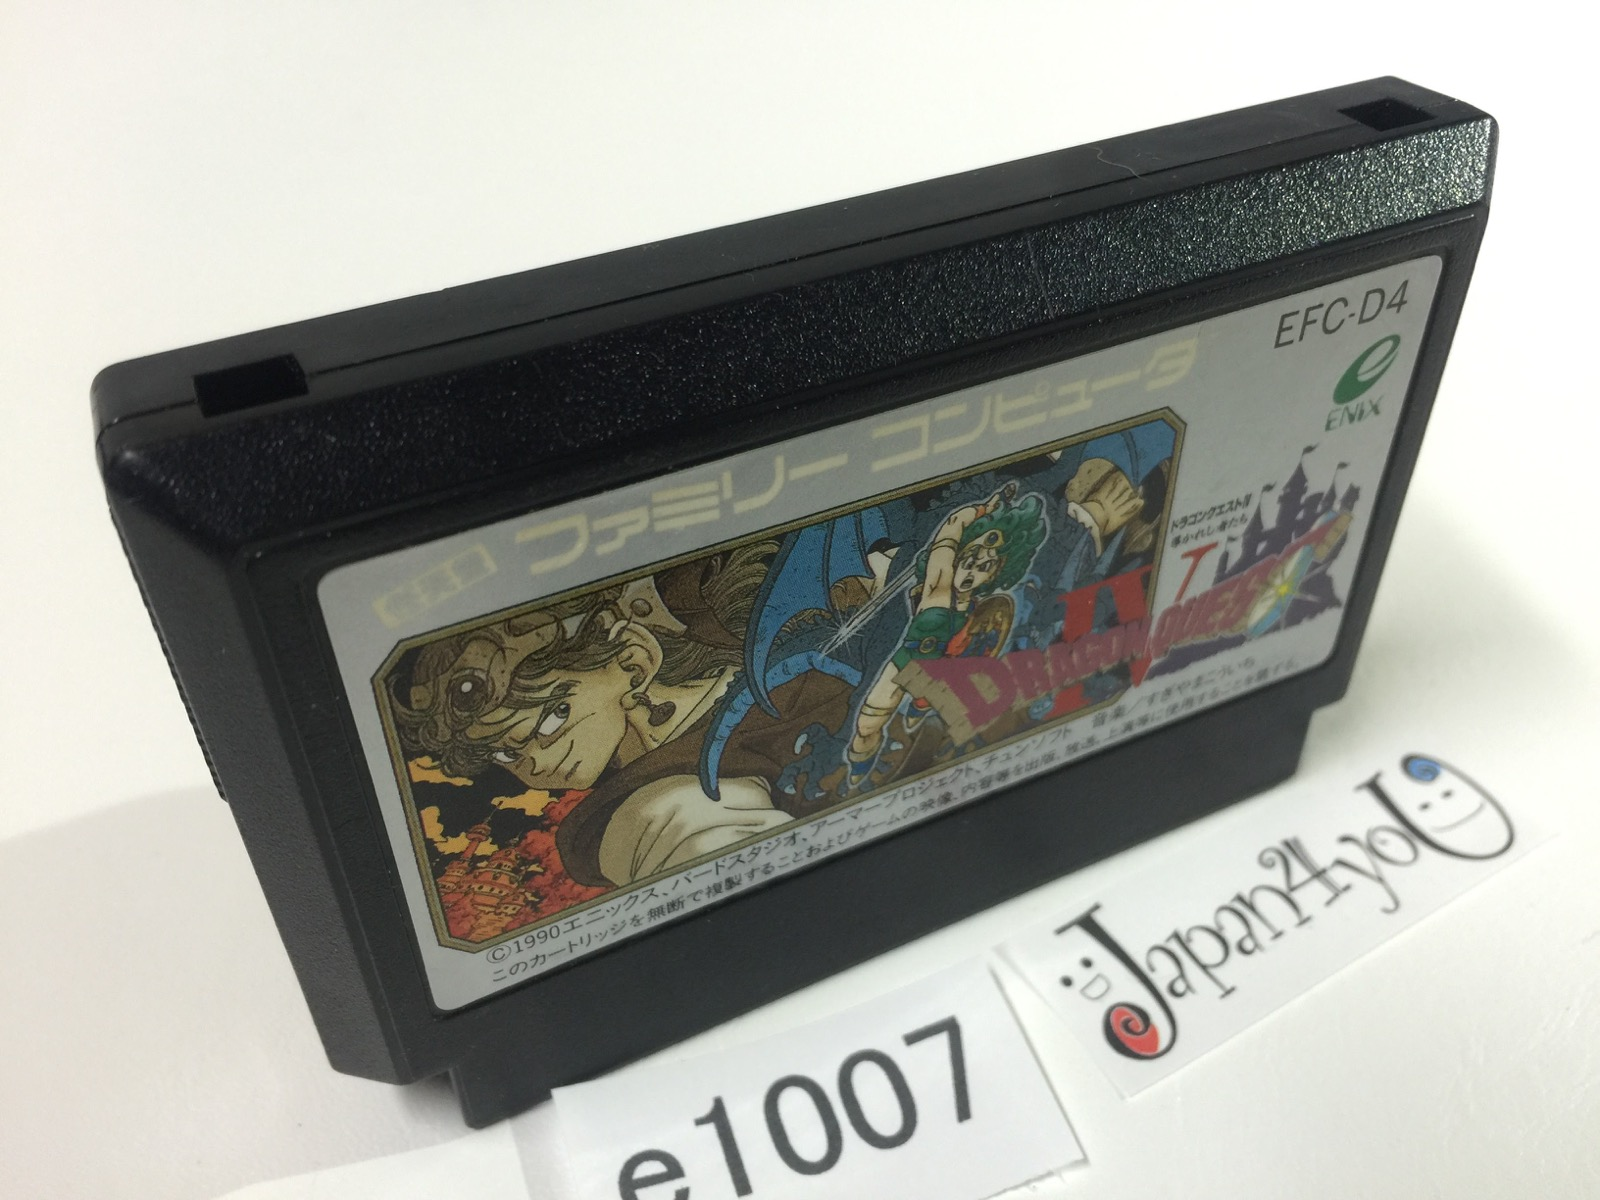 E1007 Dragon Quest 4 NES Famicom Japan J4U | eBay